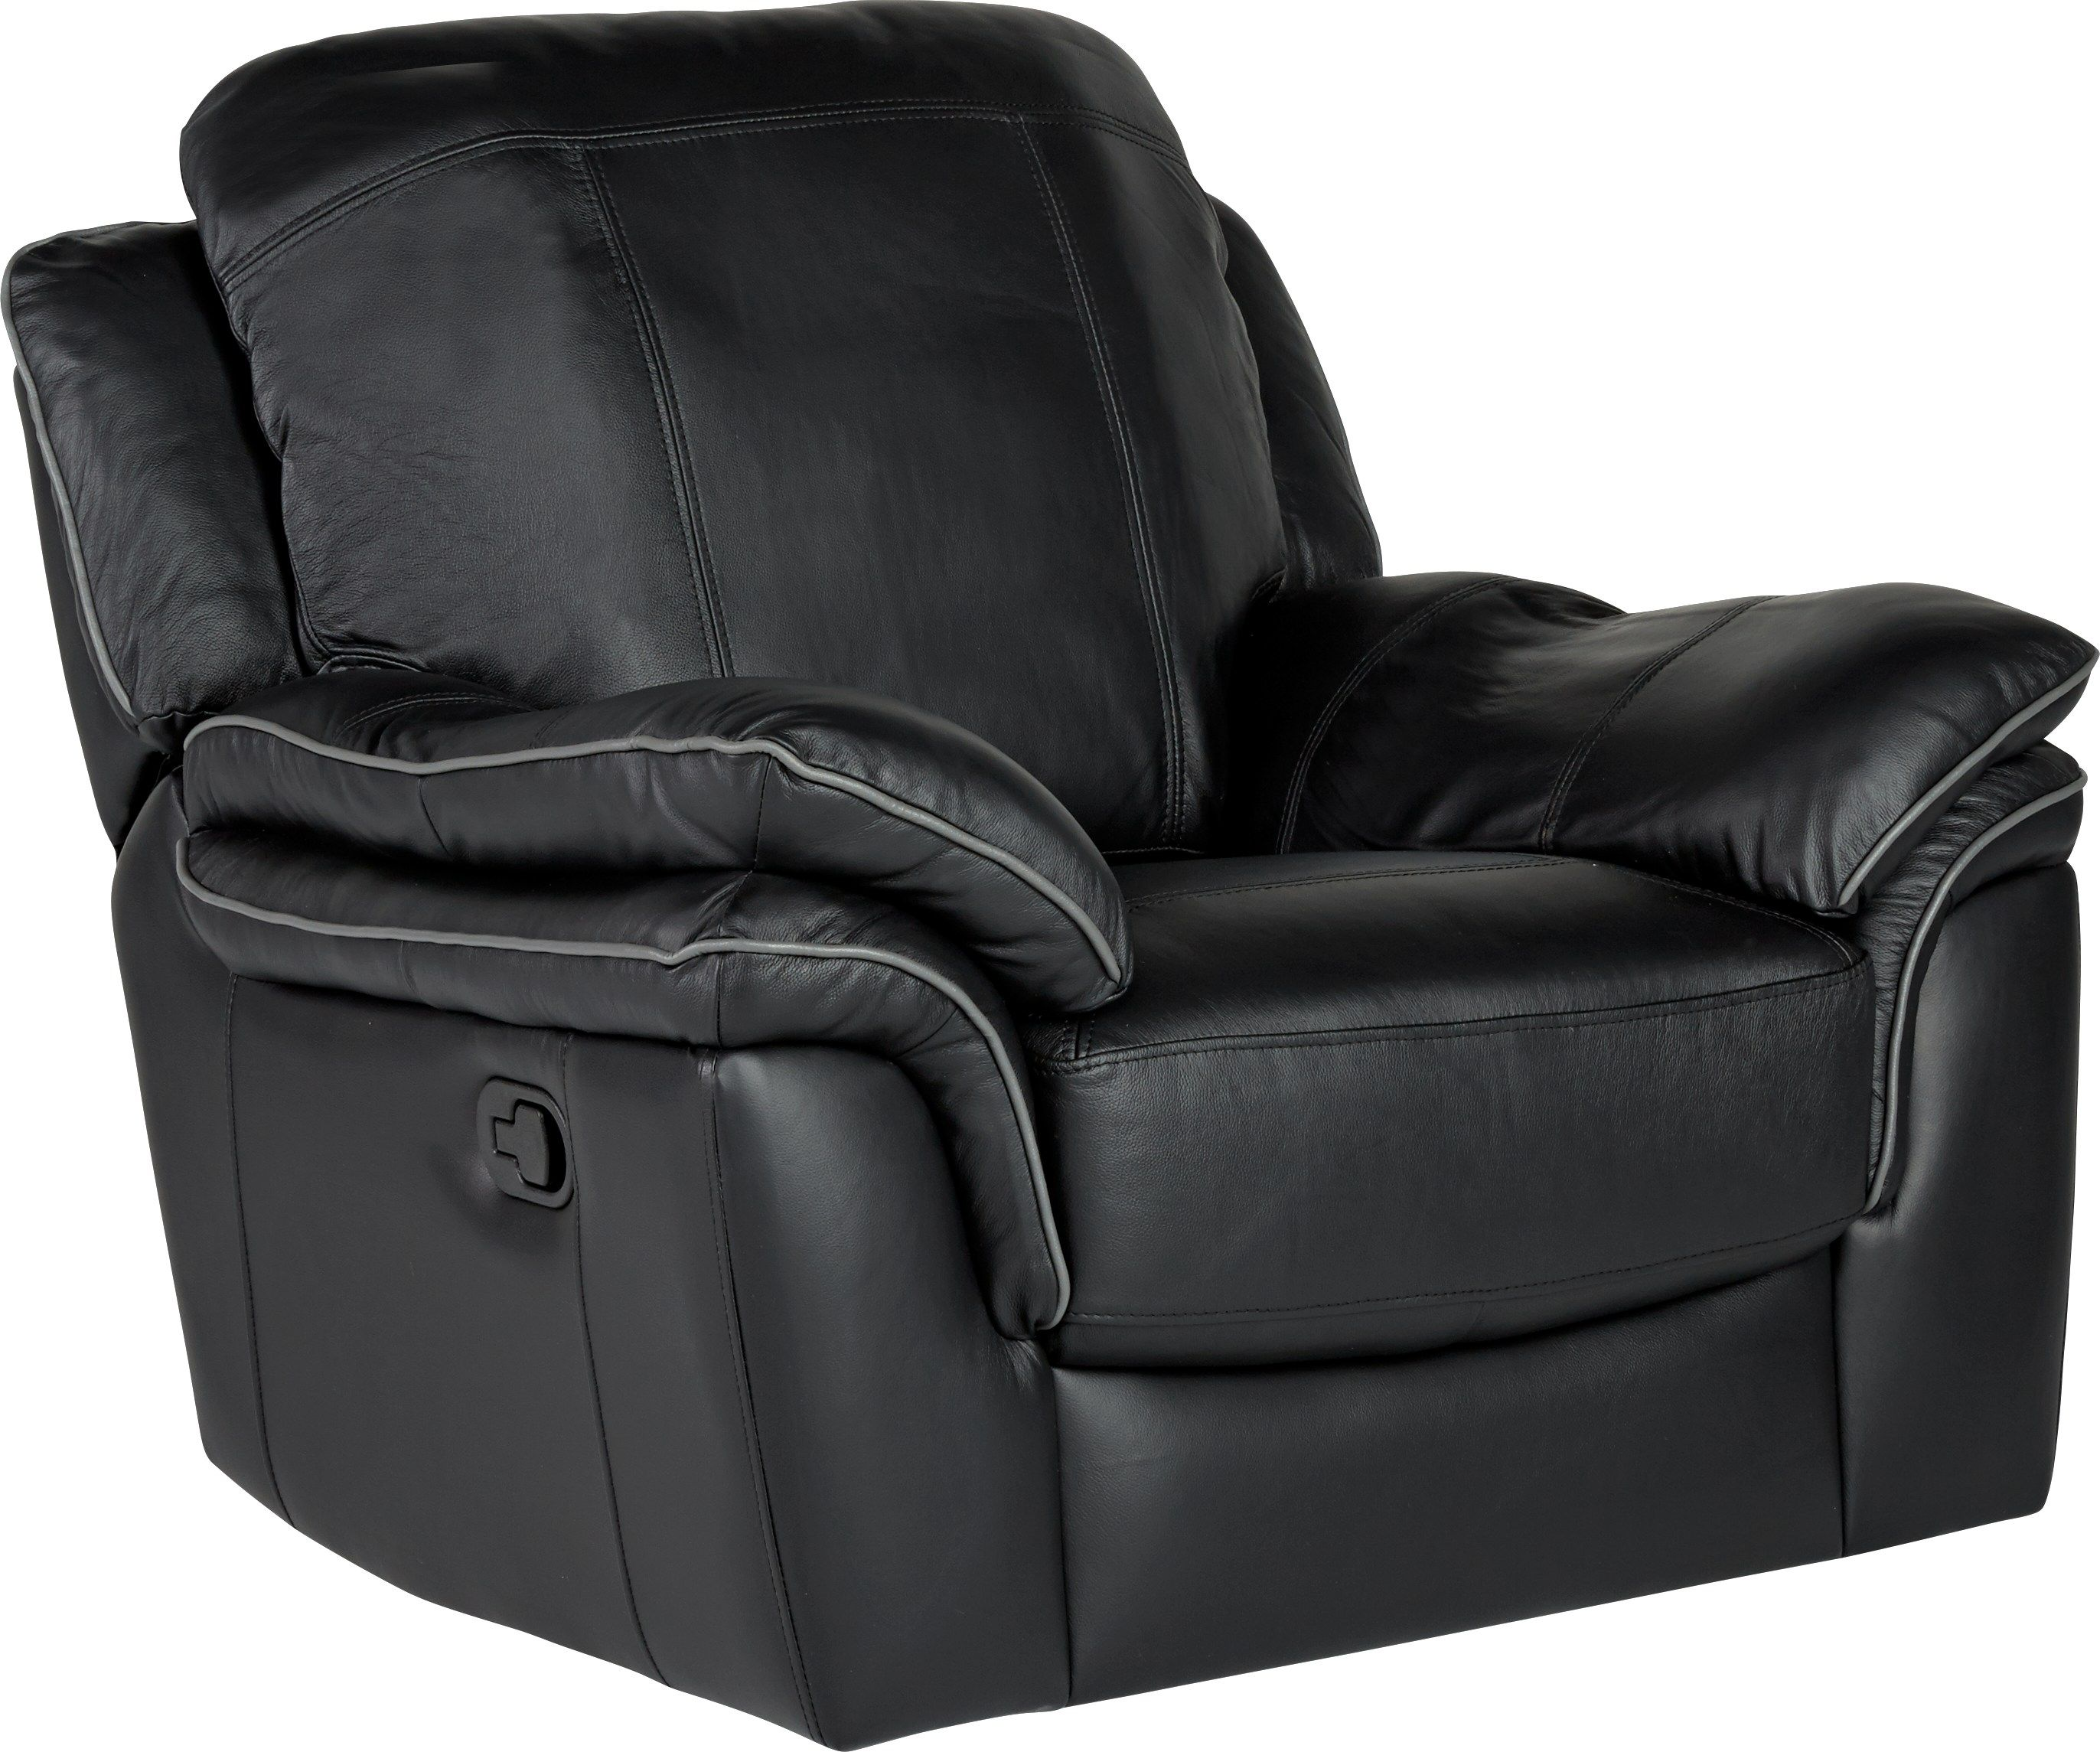 Cindy Crawford Brand Accent Chair: Cindy Crawford Home Grand Palazzo Black Leather Rocker